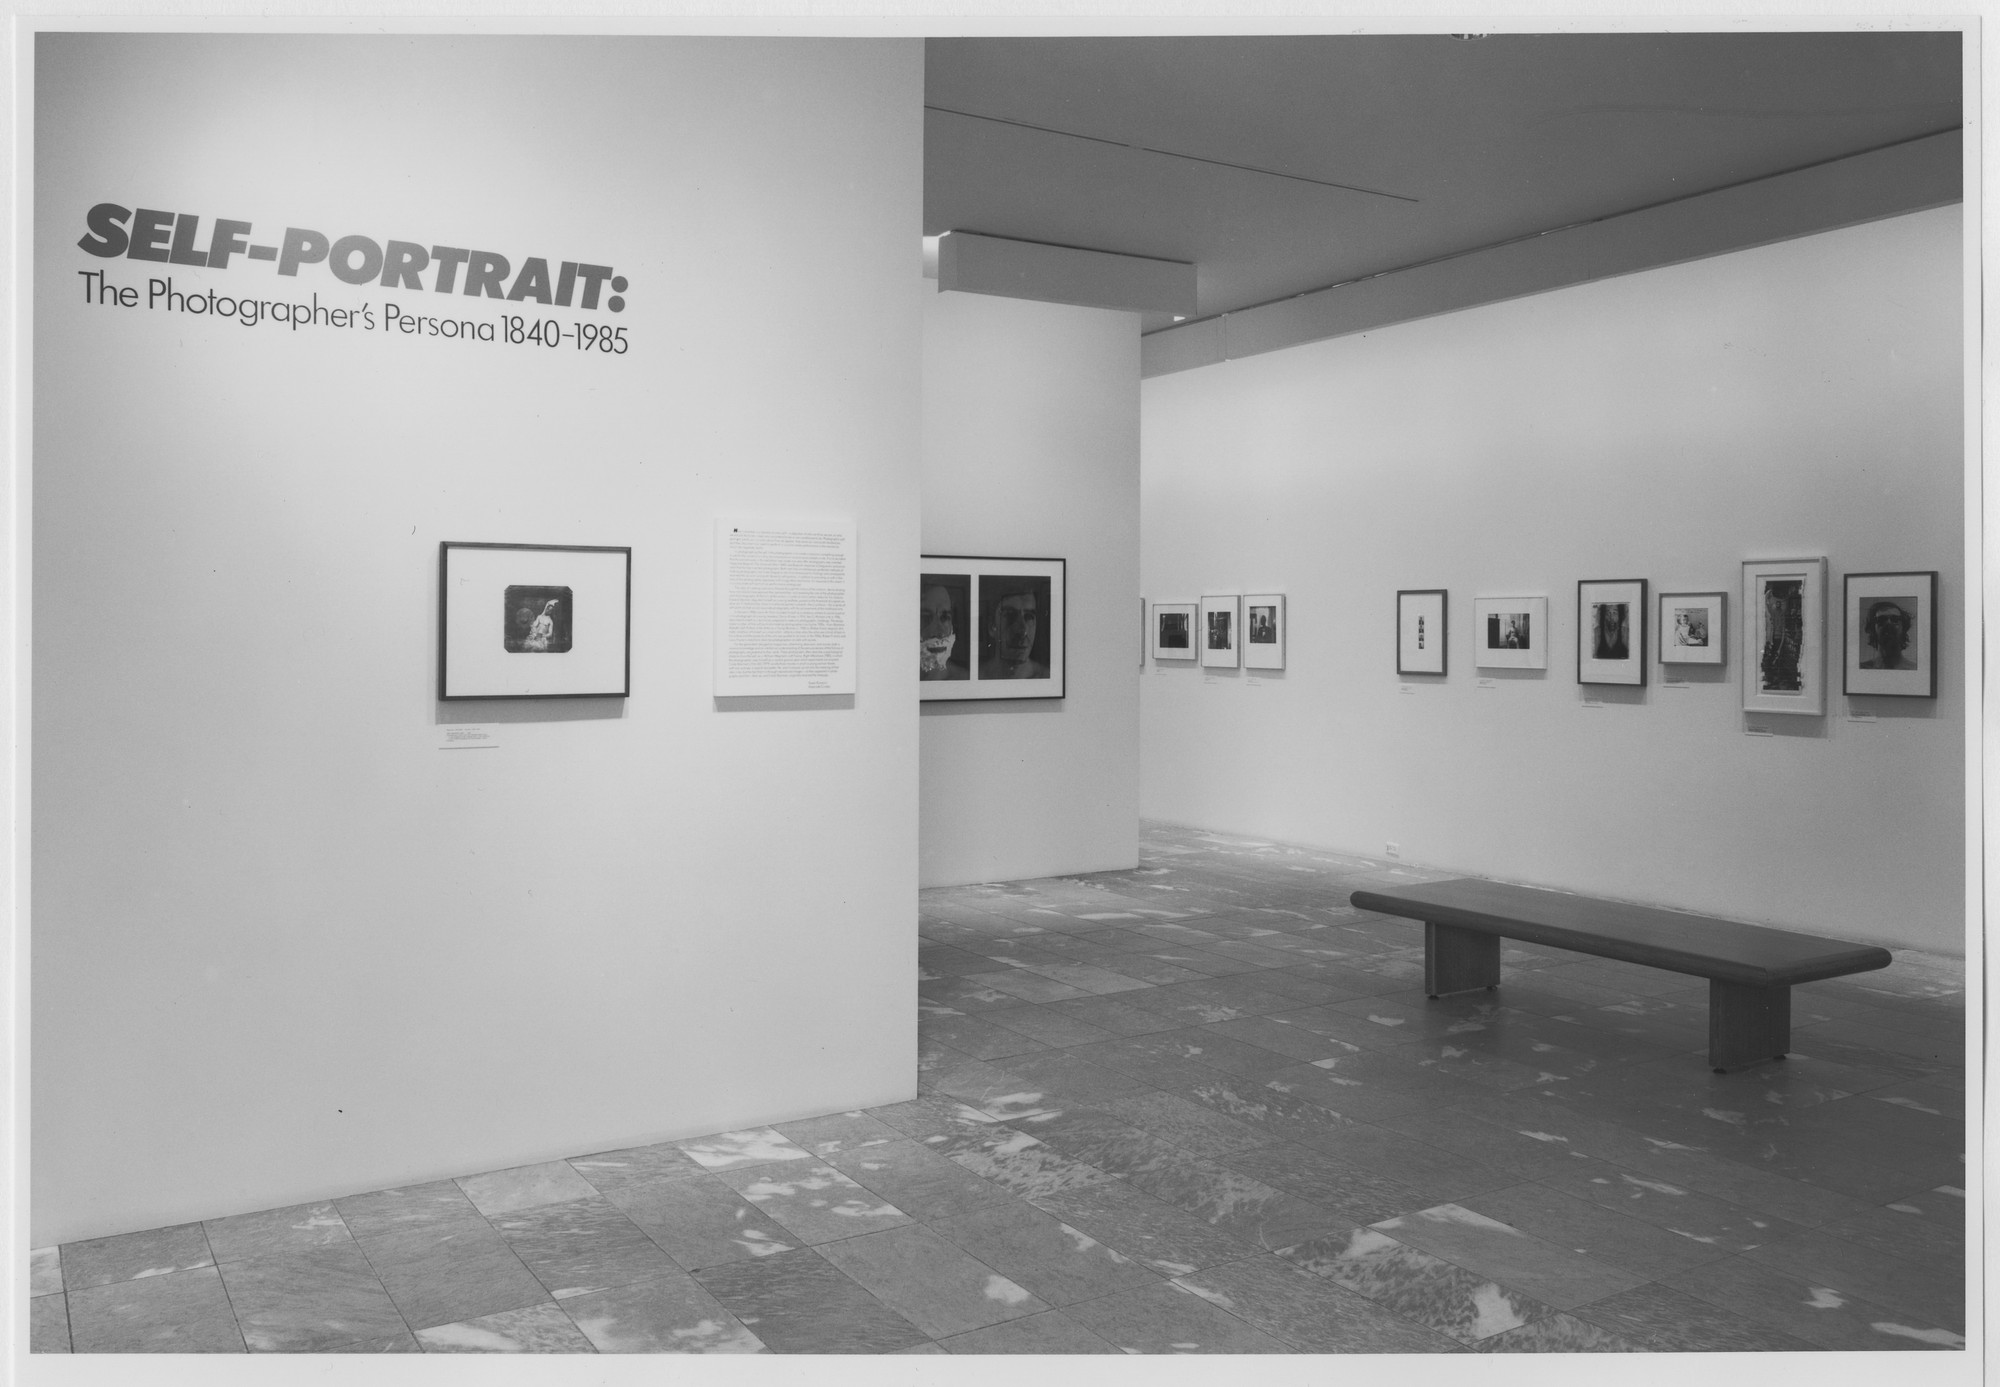 "Installation view of the exhibition, ""Self-Portrait: The Photographer's Persona 1840-1985"" November 7, 1985–January 7, 1986. Photographic Archive. The Museum of Modern Art Archives, New York. IN1409.1. Photograph by Mali Olatunji."